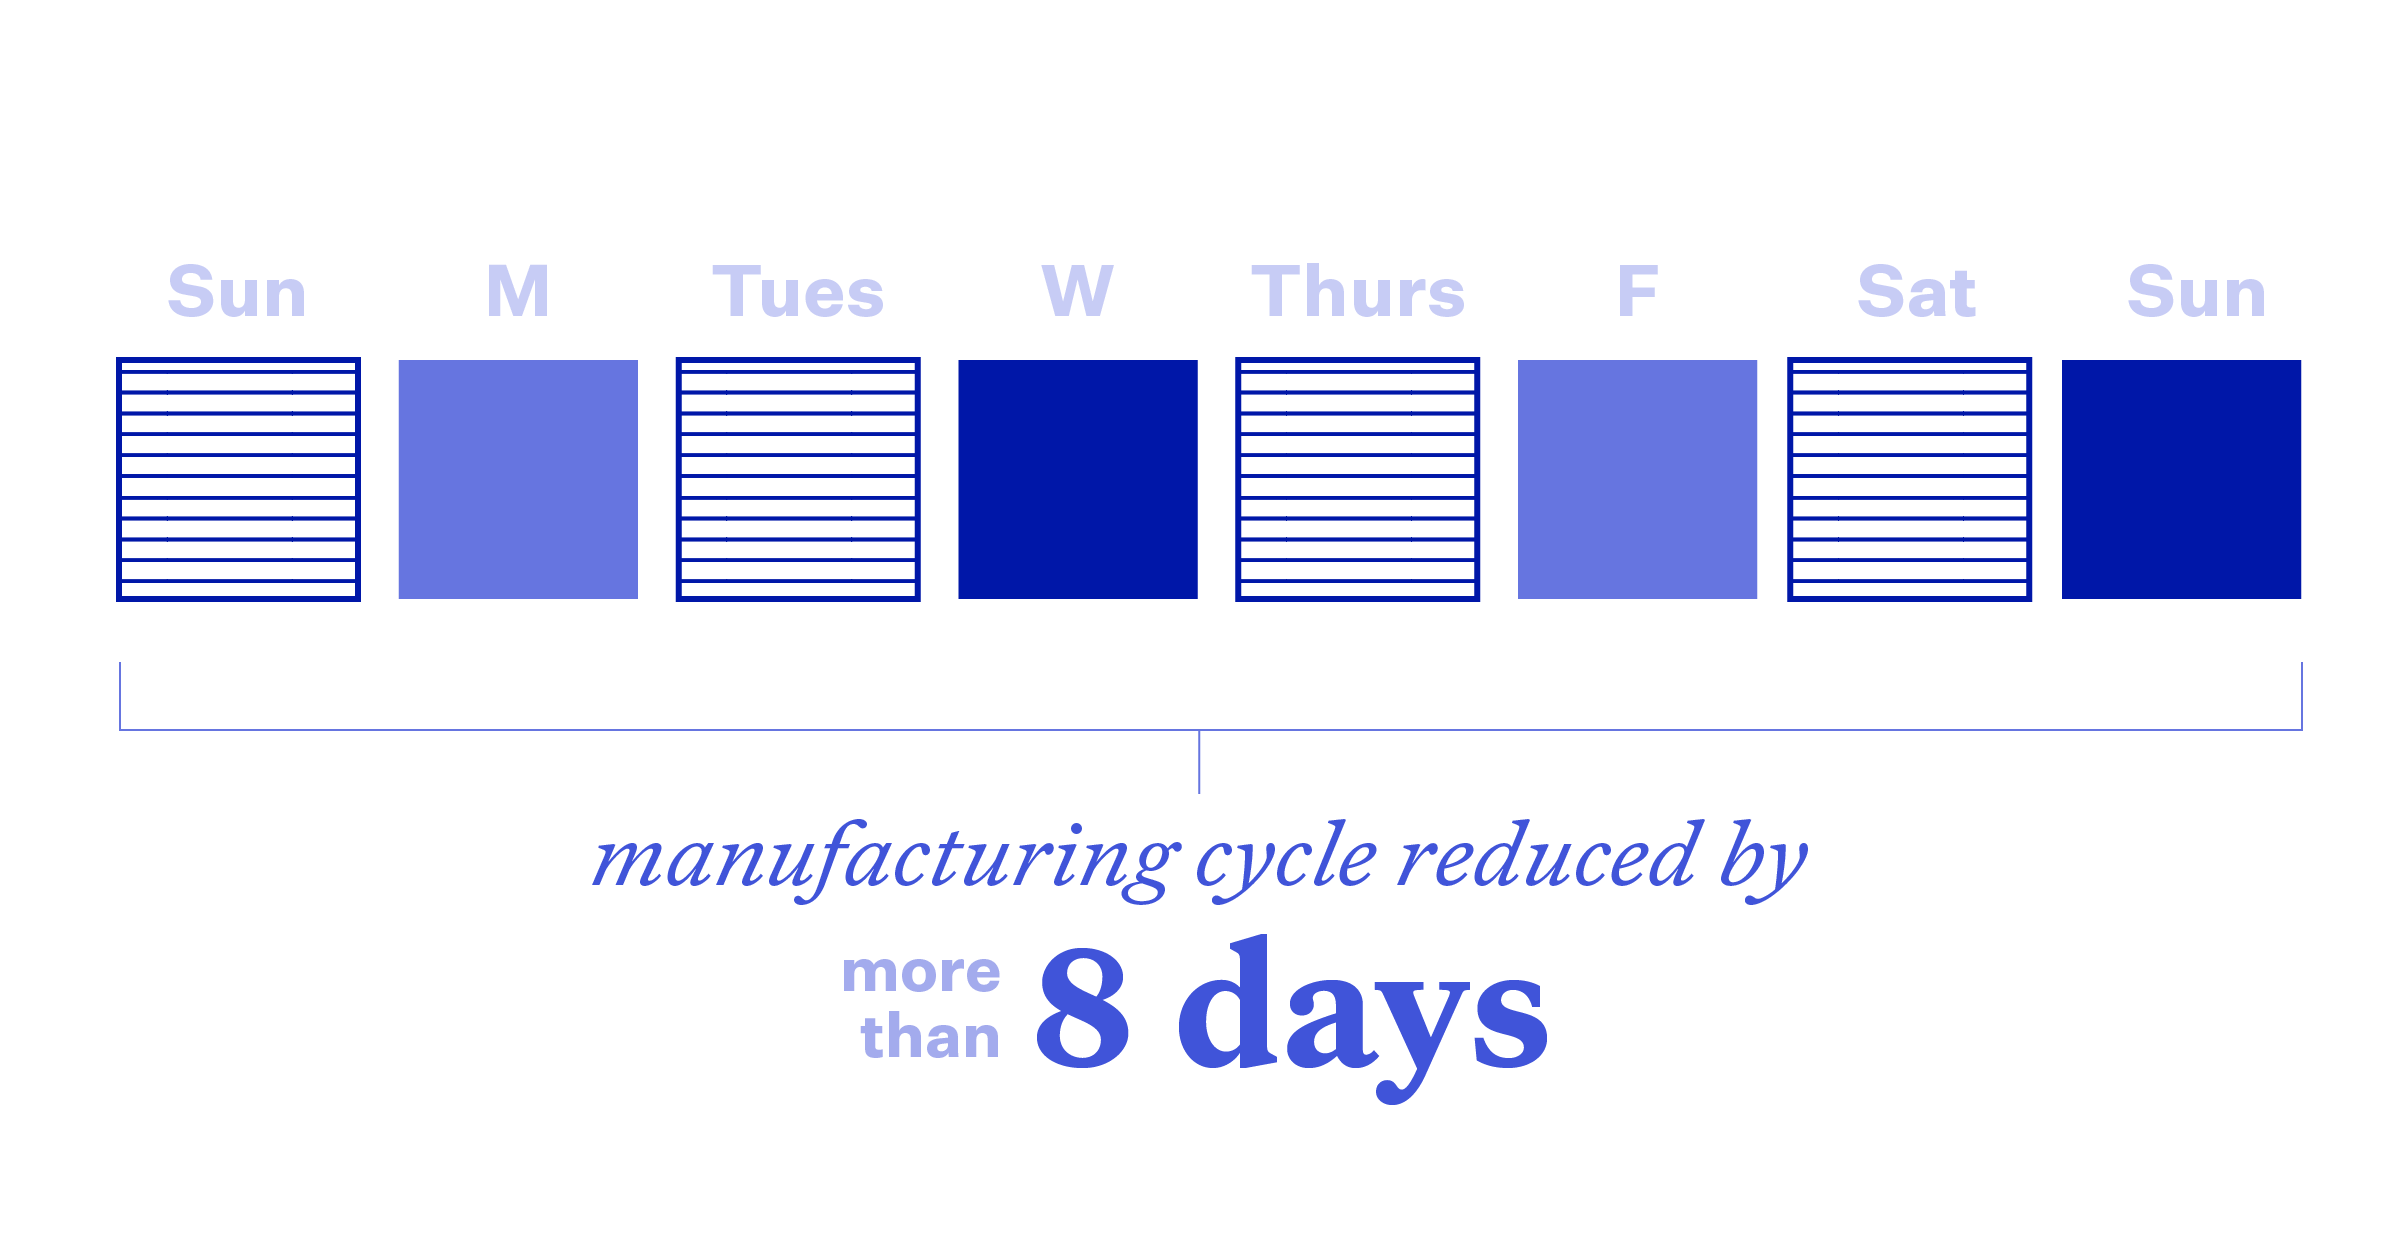 Illustration of reducing mortgage manufacturing cycle by 8 days